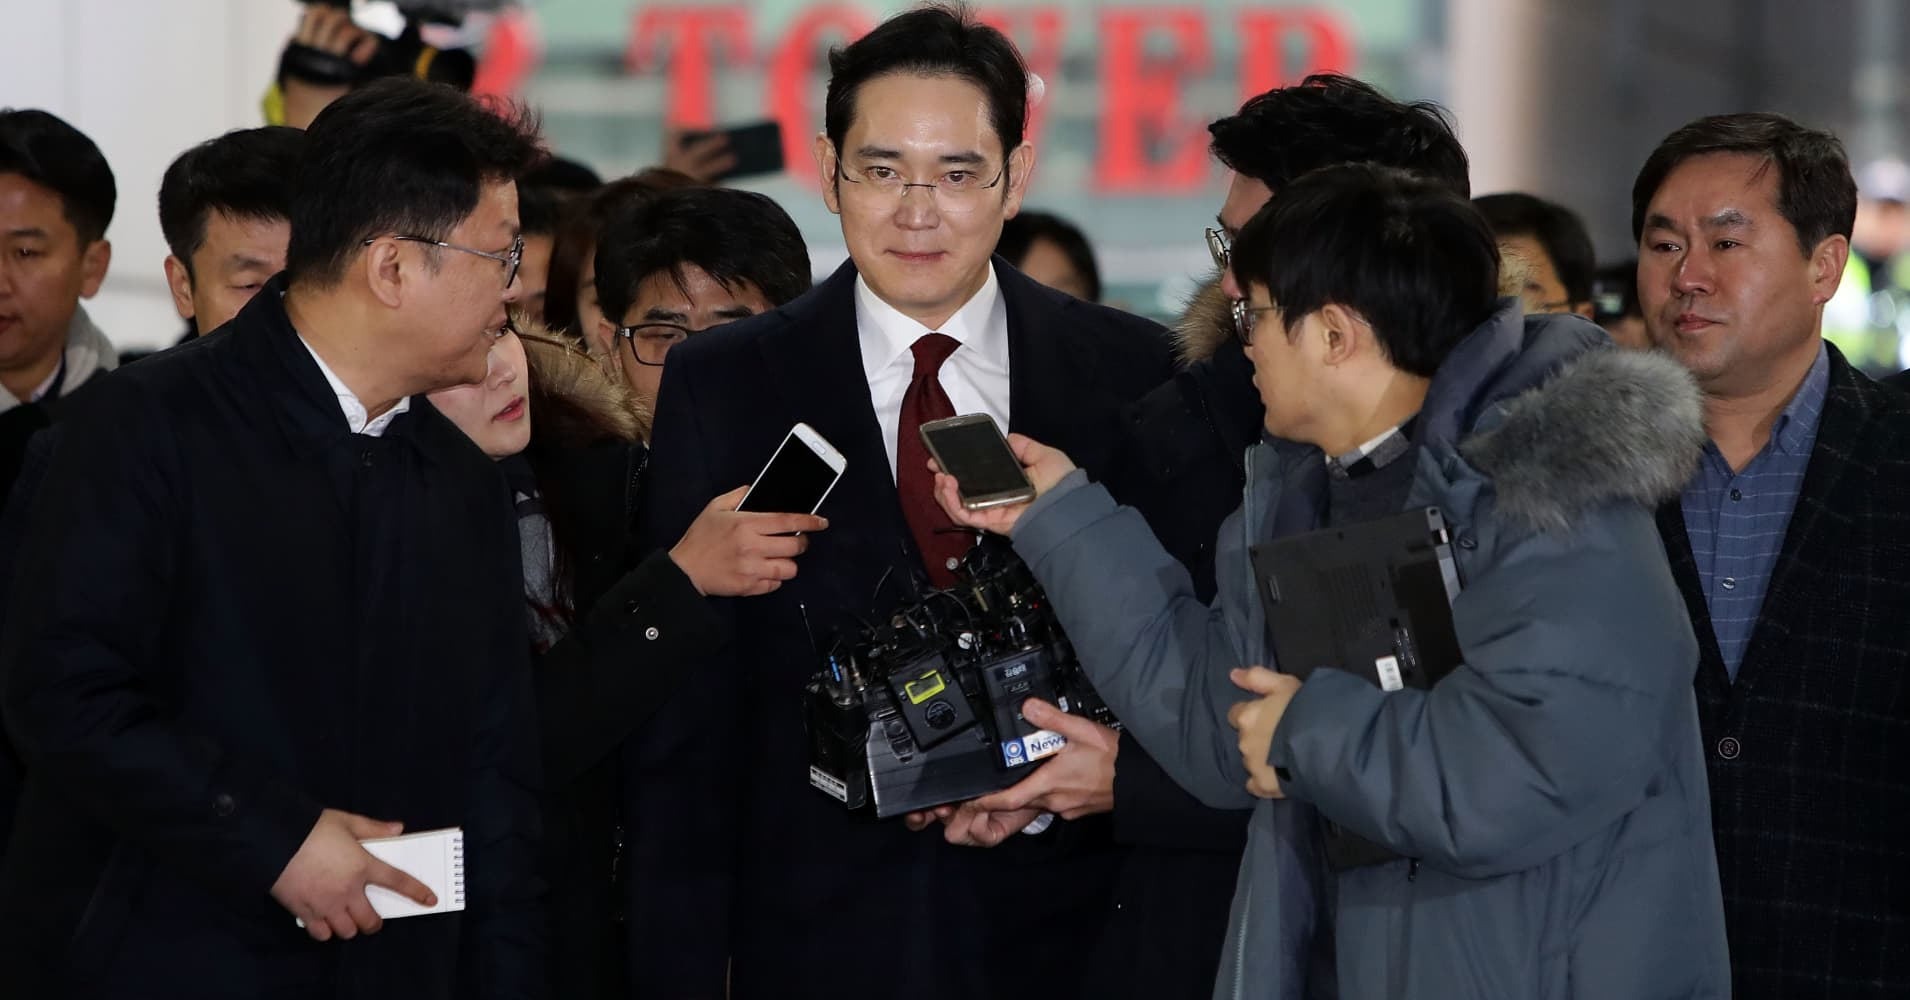 South Korea prosecutor weighs economic impact of arrest of Samsung chief